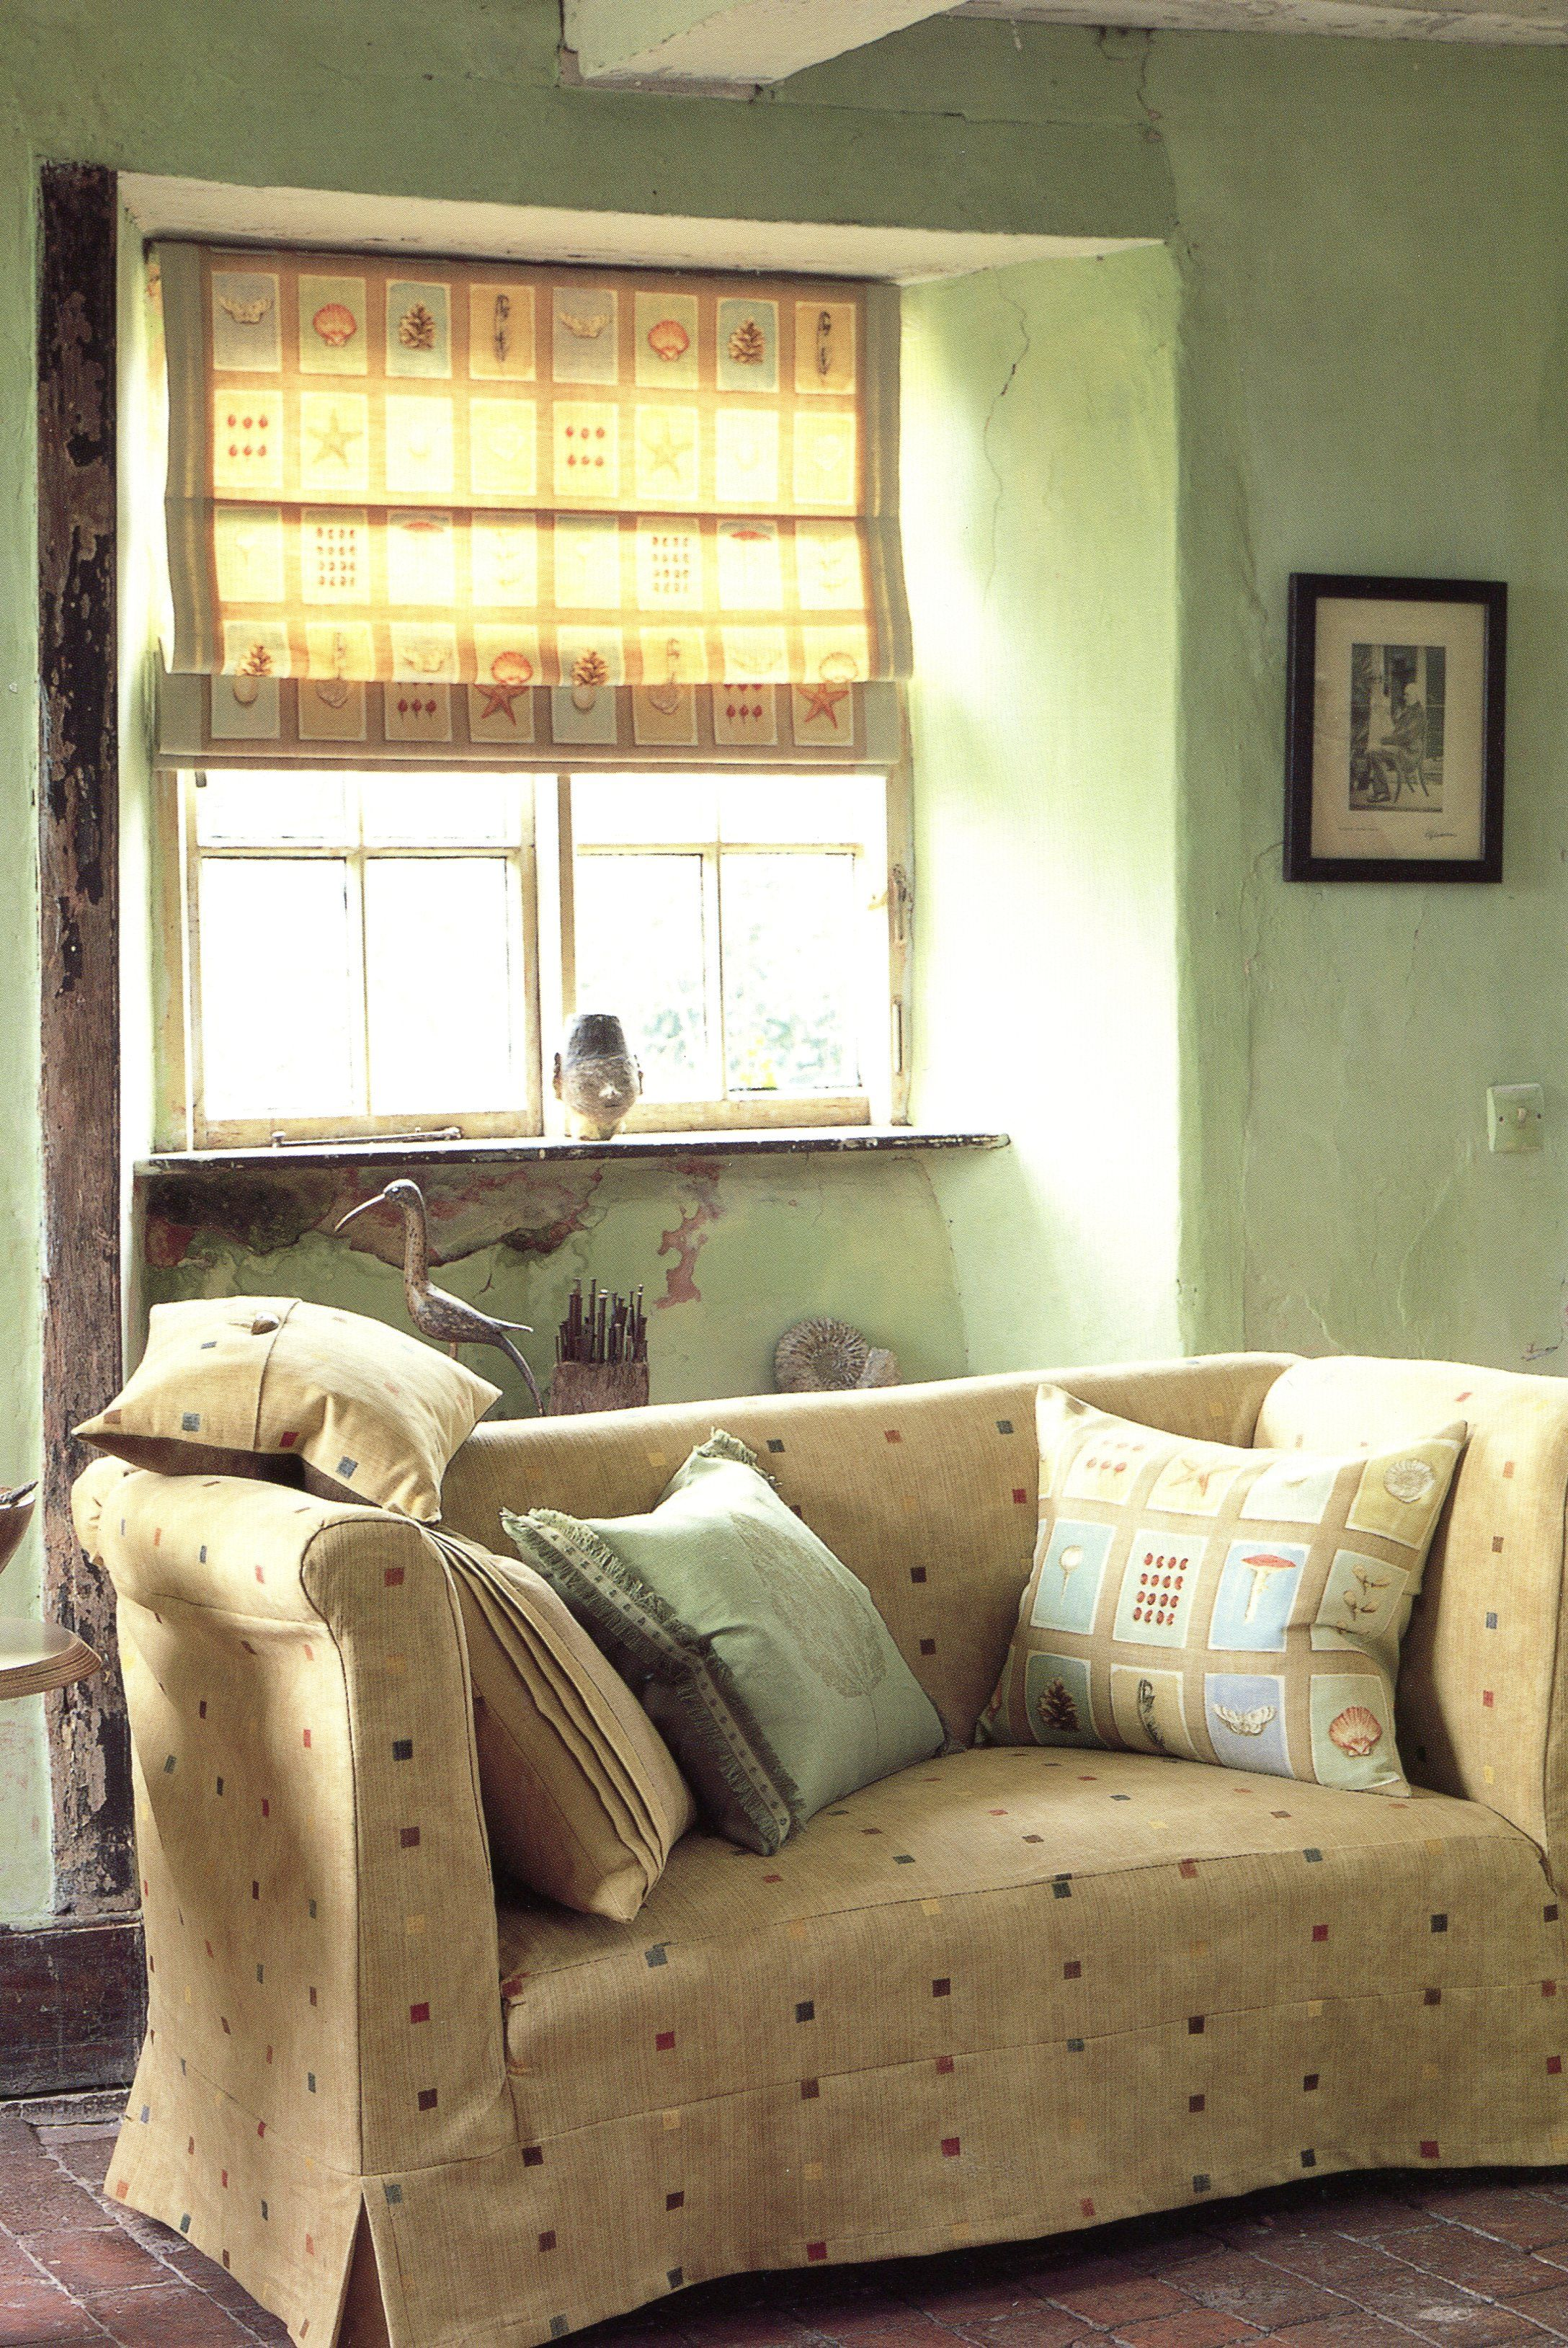 Rough, Rustic Walls Contrast With The Neat Tailoring Of A Roman Blind  Within The Recess And A Loose Sofa Cover.